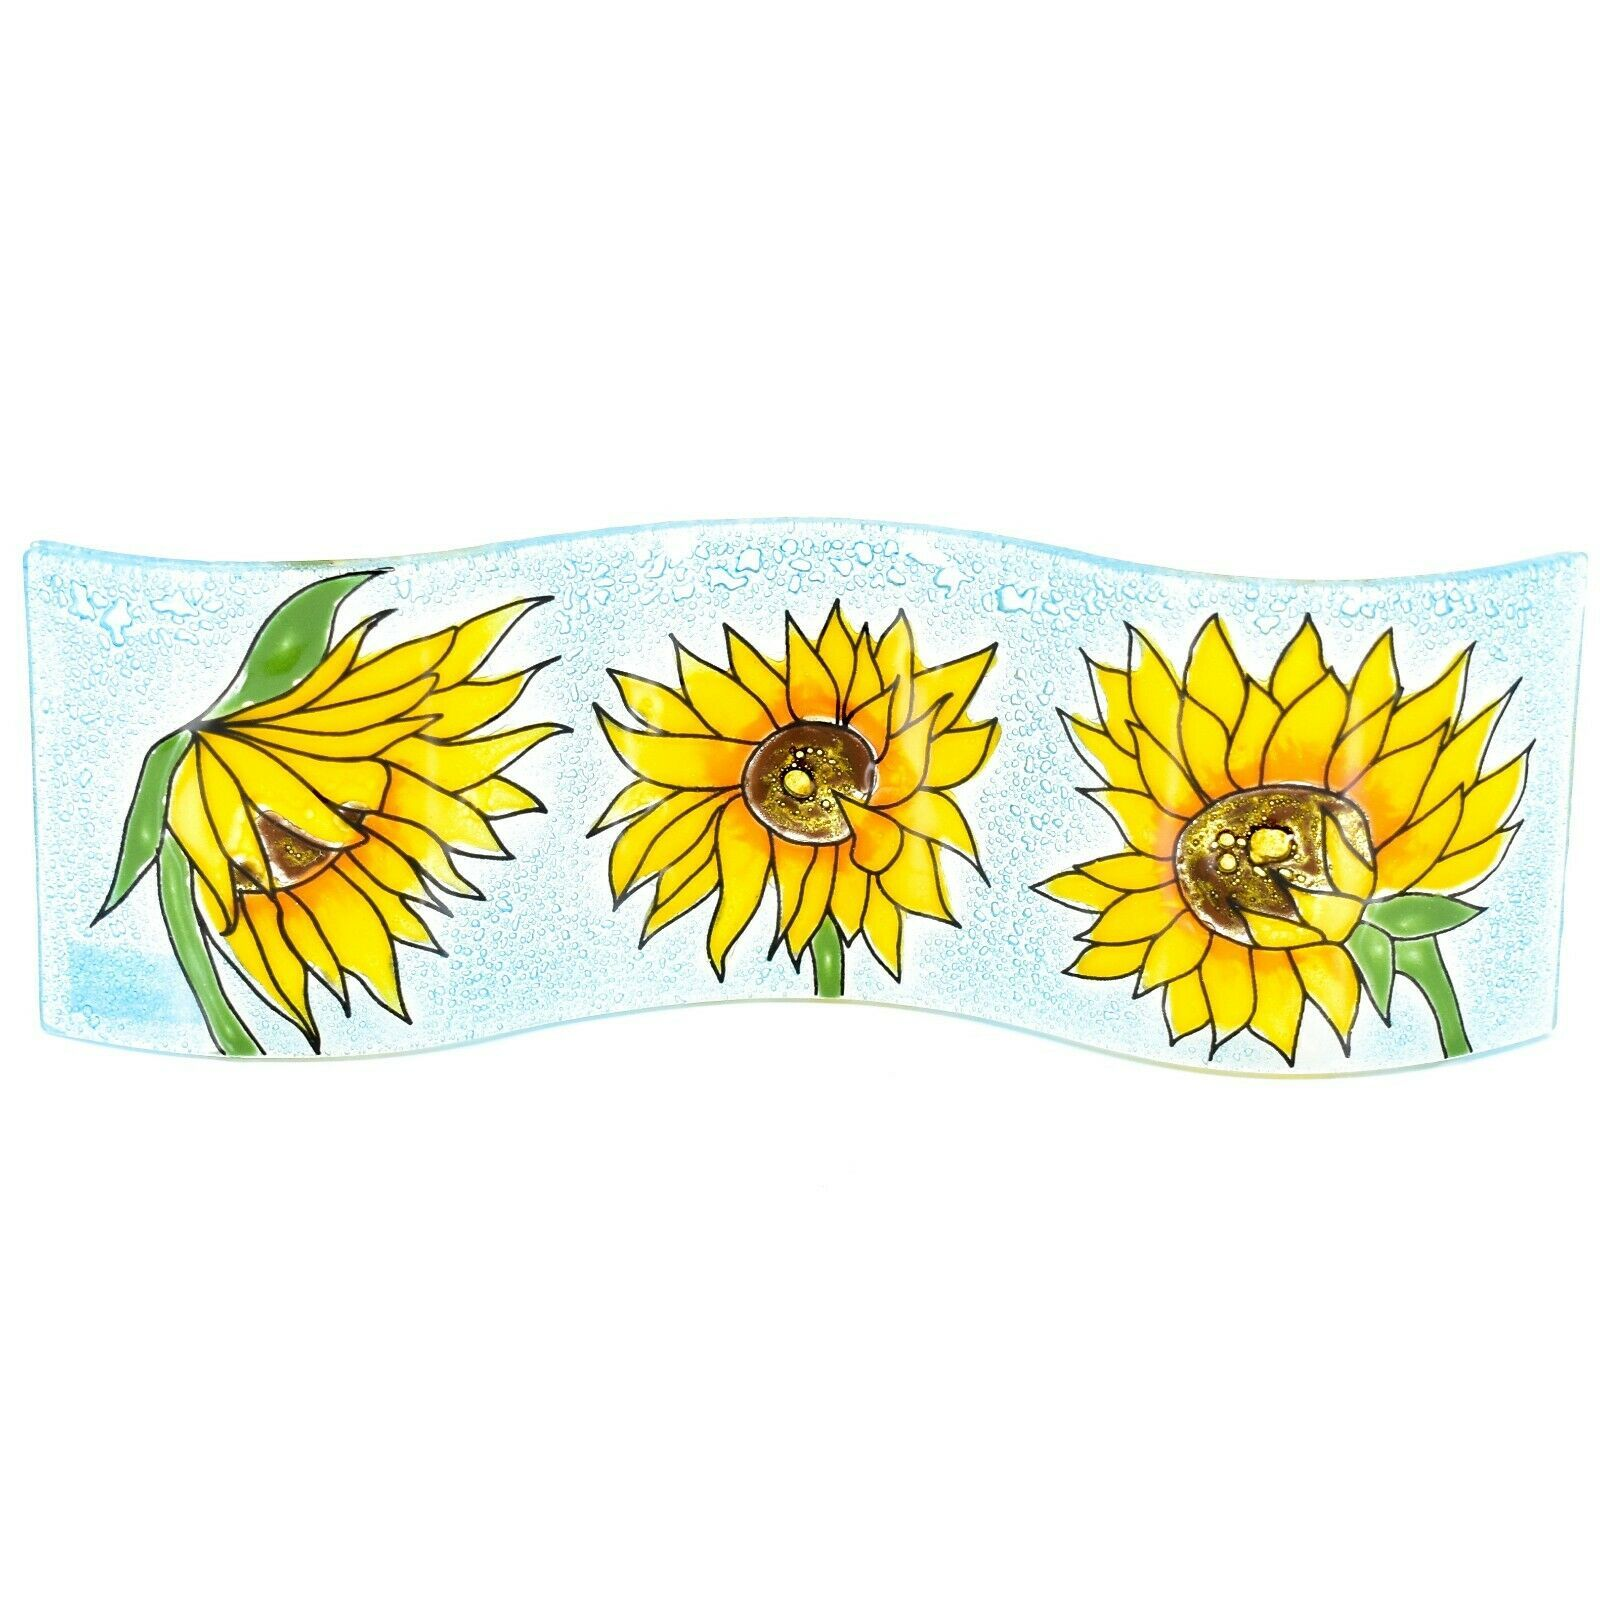 Fused Art Glass Sunflowers Flowers Wavy Decor Piece Handmade in Ecuador